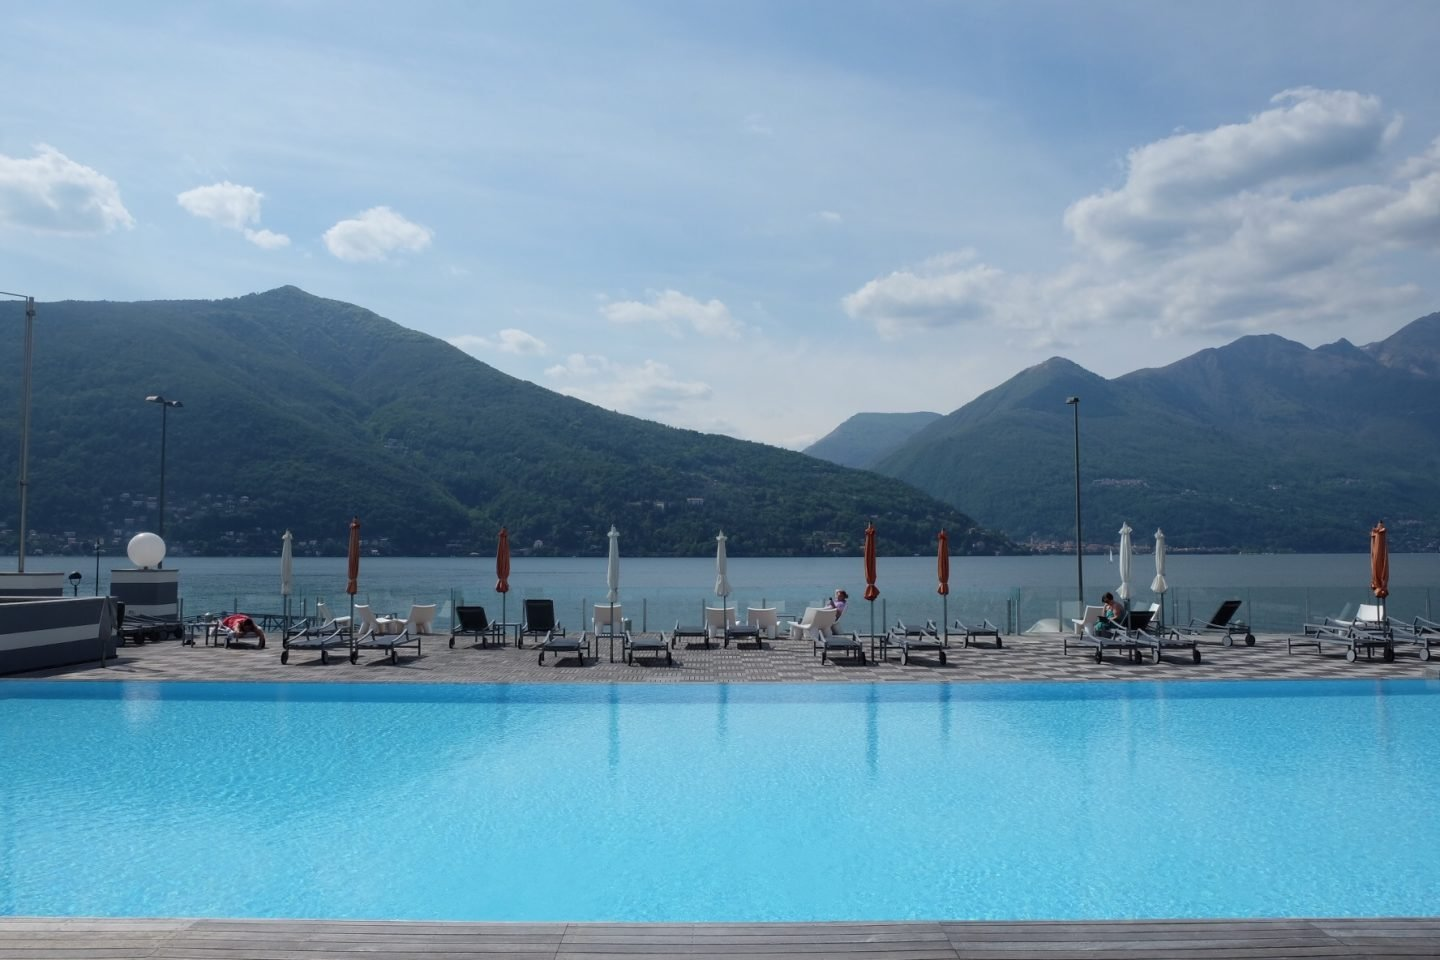 The pool at Golfo Gabellla was perhaps the most beautiful spot with an infinity pool overlooking the lake Maggiore